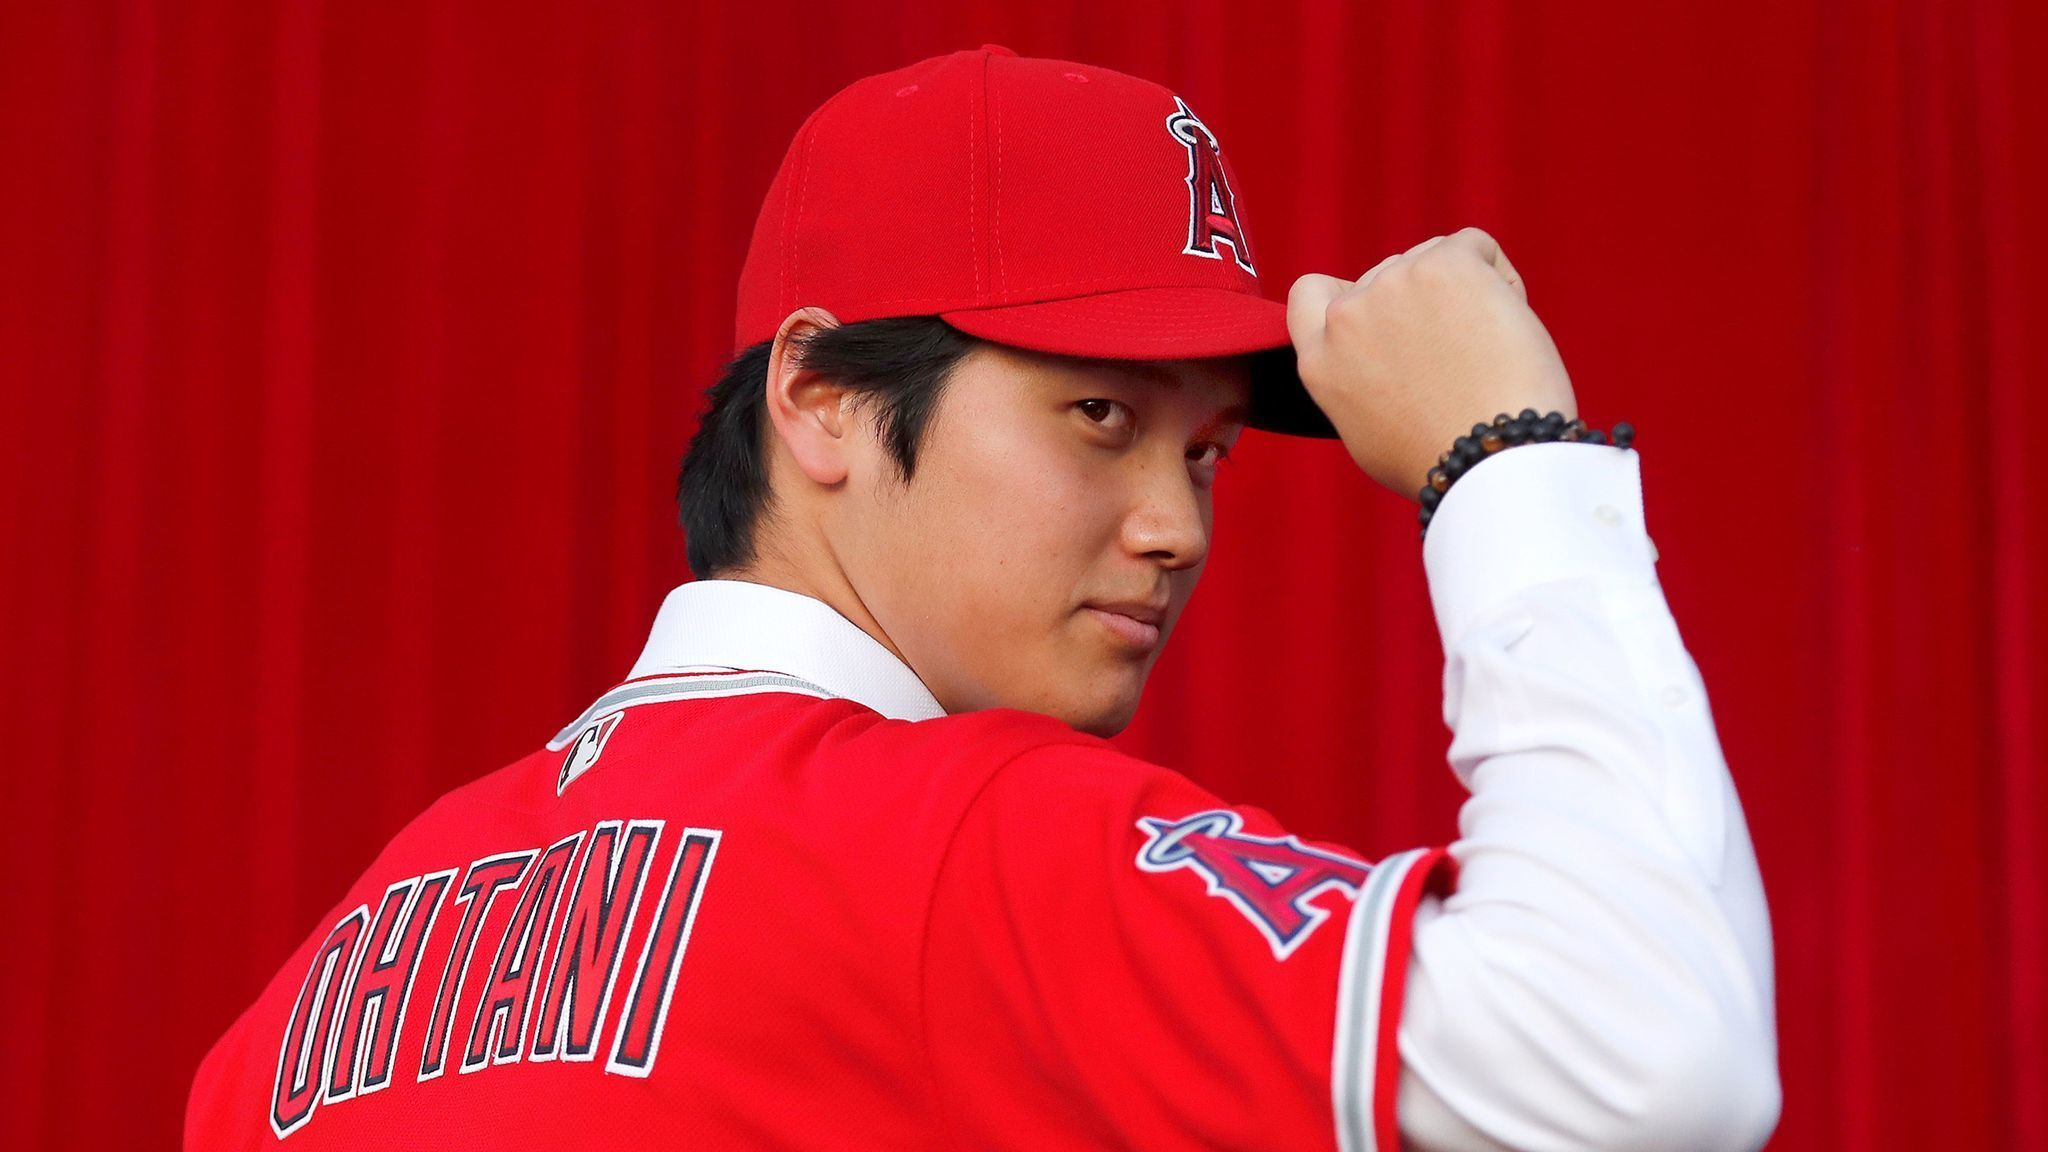 Oh no, Ohtani? Not really. Angels will be fine - LA Times